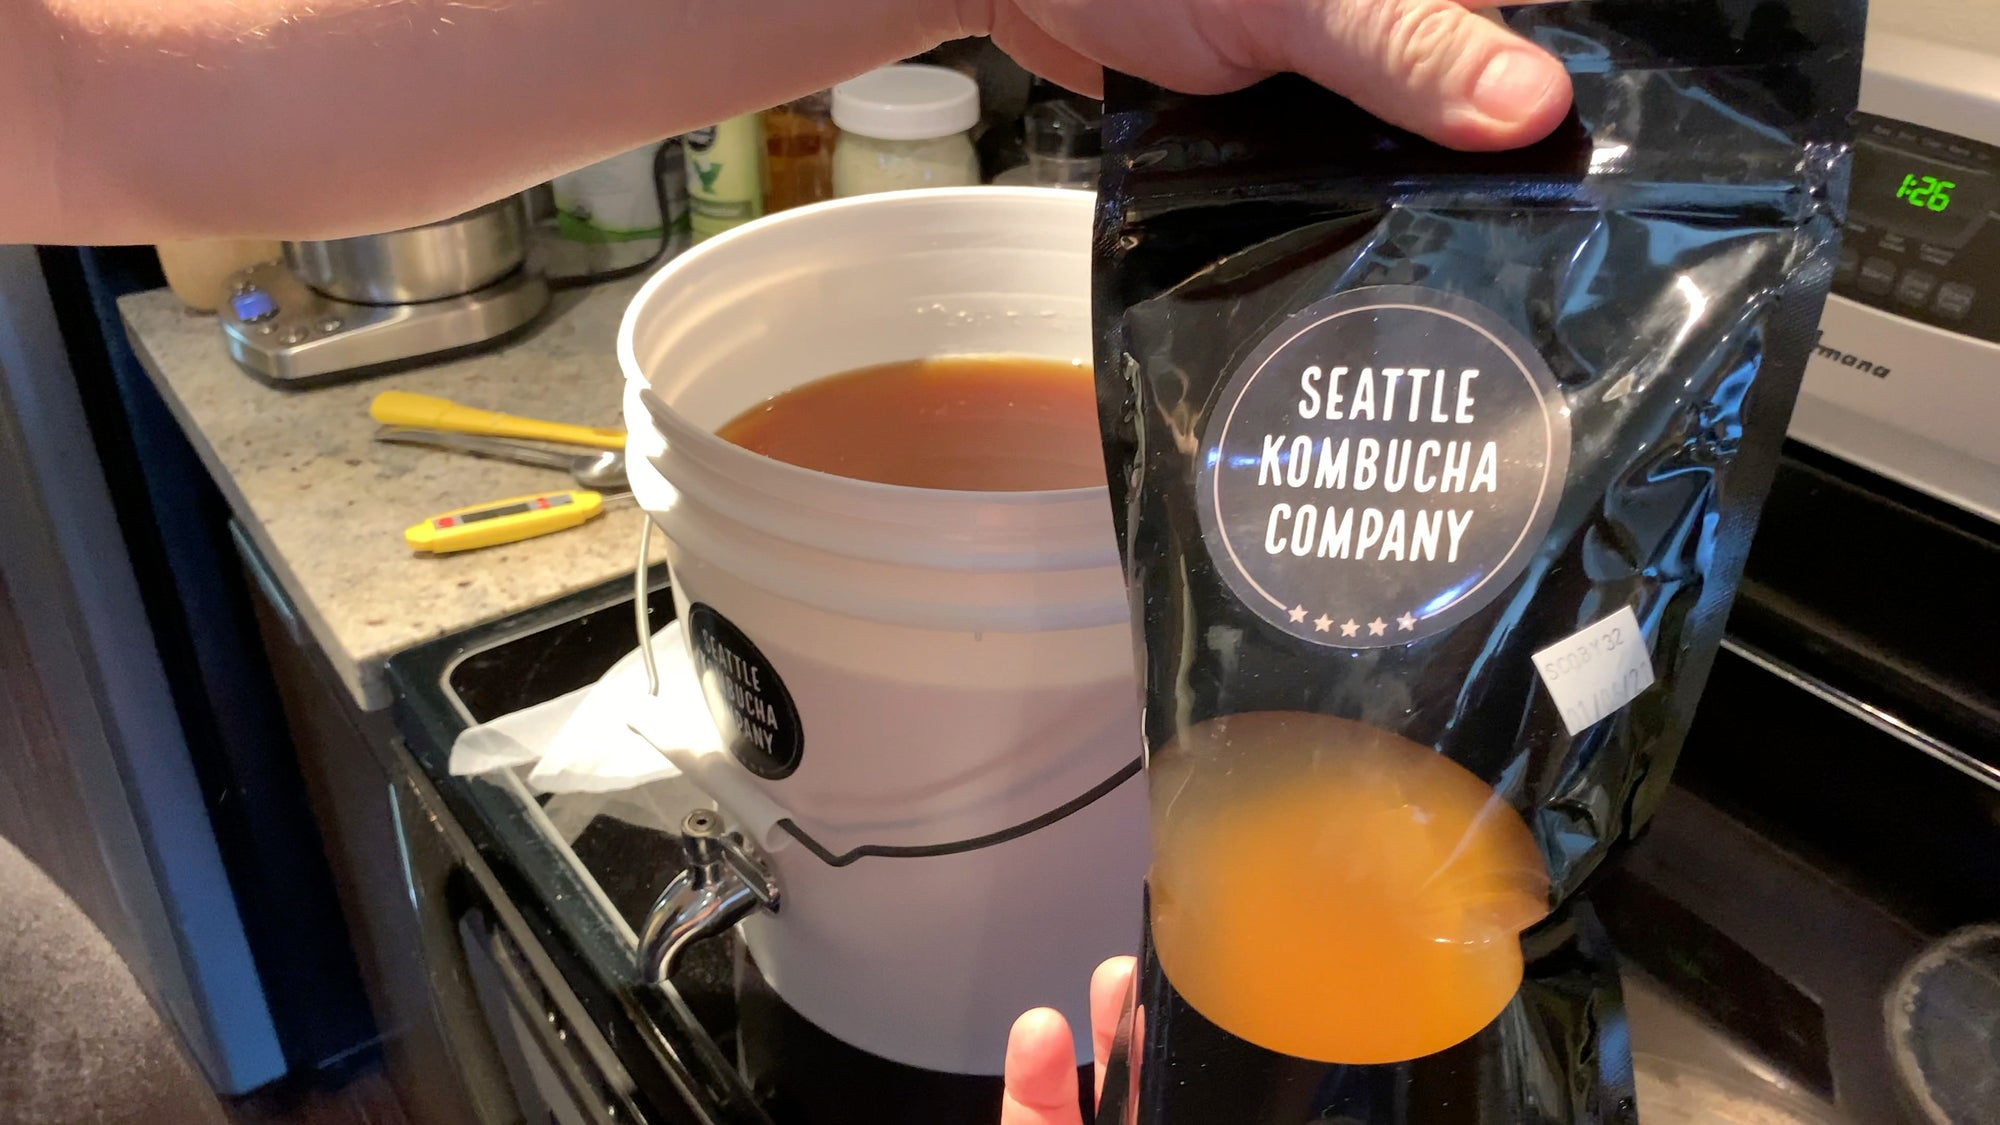 Organic Seattle Kombucha SCOBY and Liquid Starter to Make Kombucha At Home - 2 Options